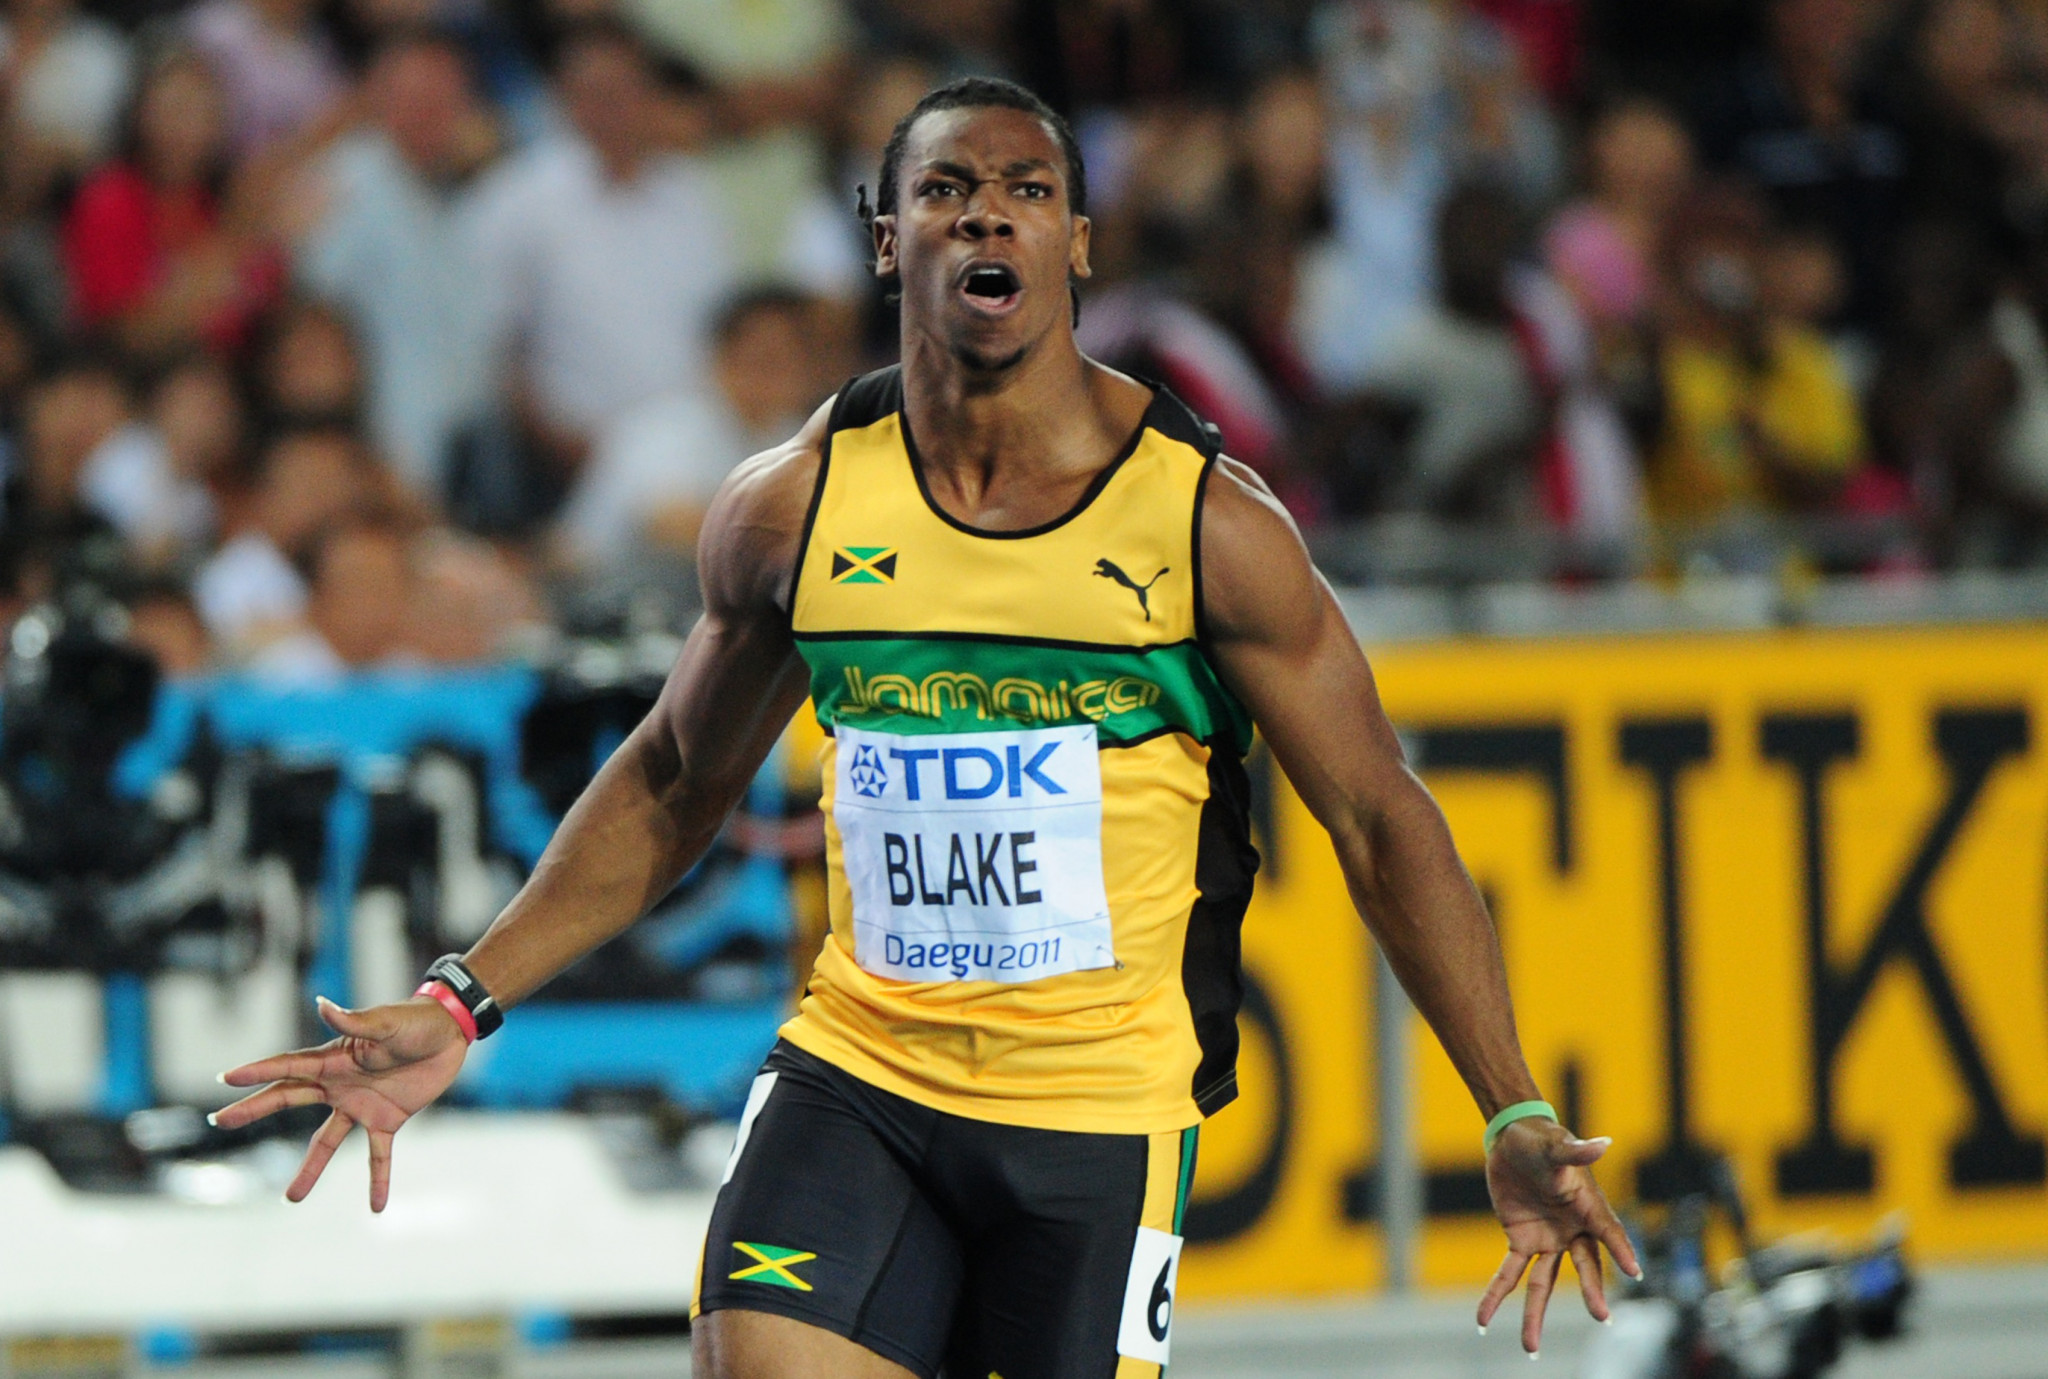 Jamaica's Yohan Blake is hoping to get back to the heights of 2011 when he won the 100m at the IAAF World Championships in Daegu before injury took its toll ©Getty Images